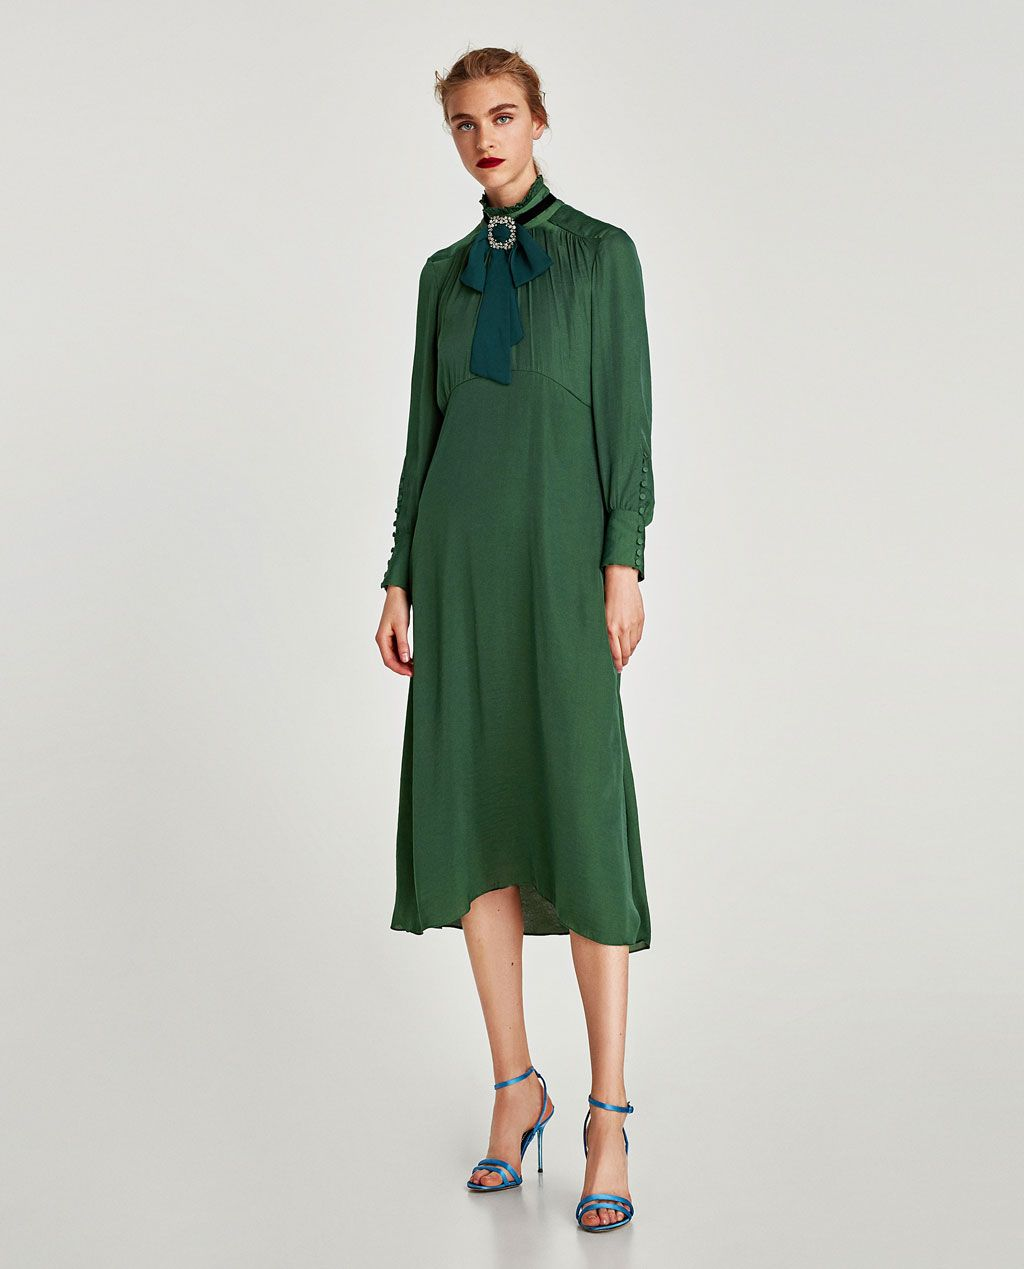 1efb940e Image 1 of FLOWING MIDI DRESS WITH LONG SLEEVES from Zara | Autumn ...